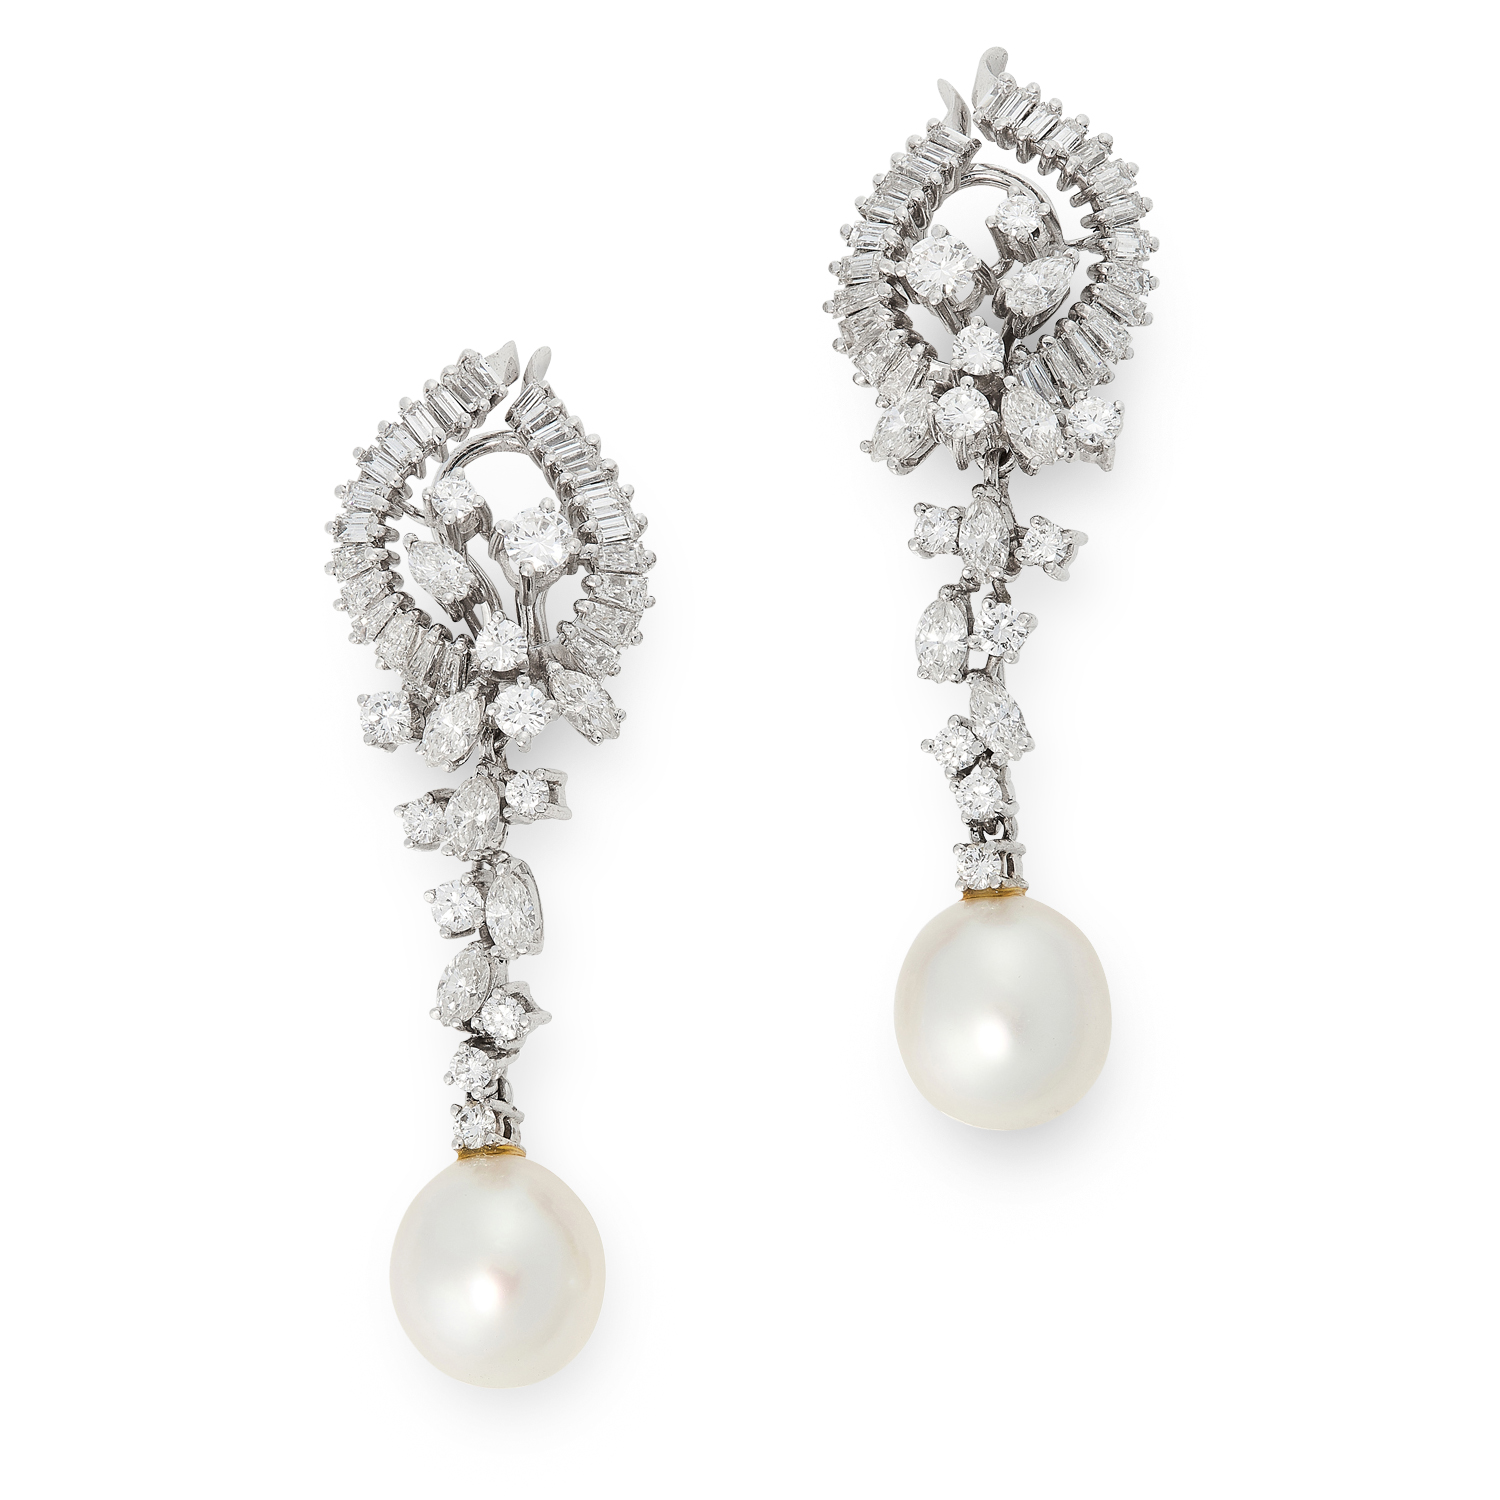 A PAIR OF PEARL AND DIAMOND EARRINGS in 18ct white gold, the articulated body of each designed as